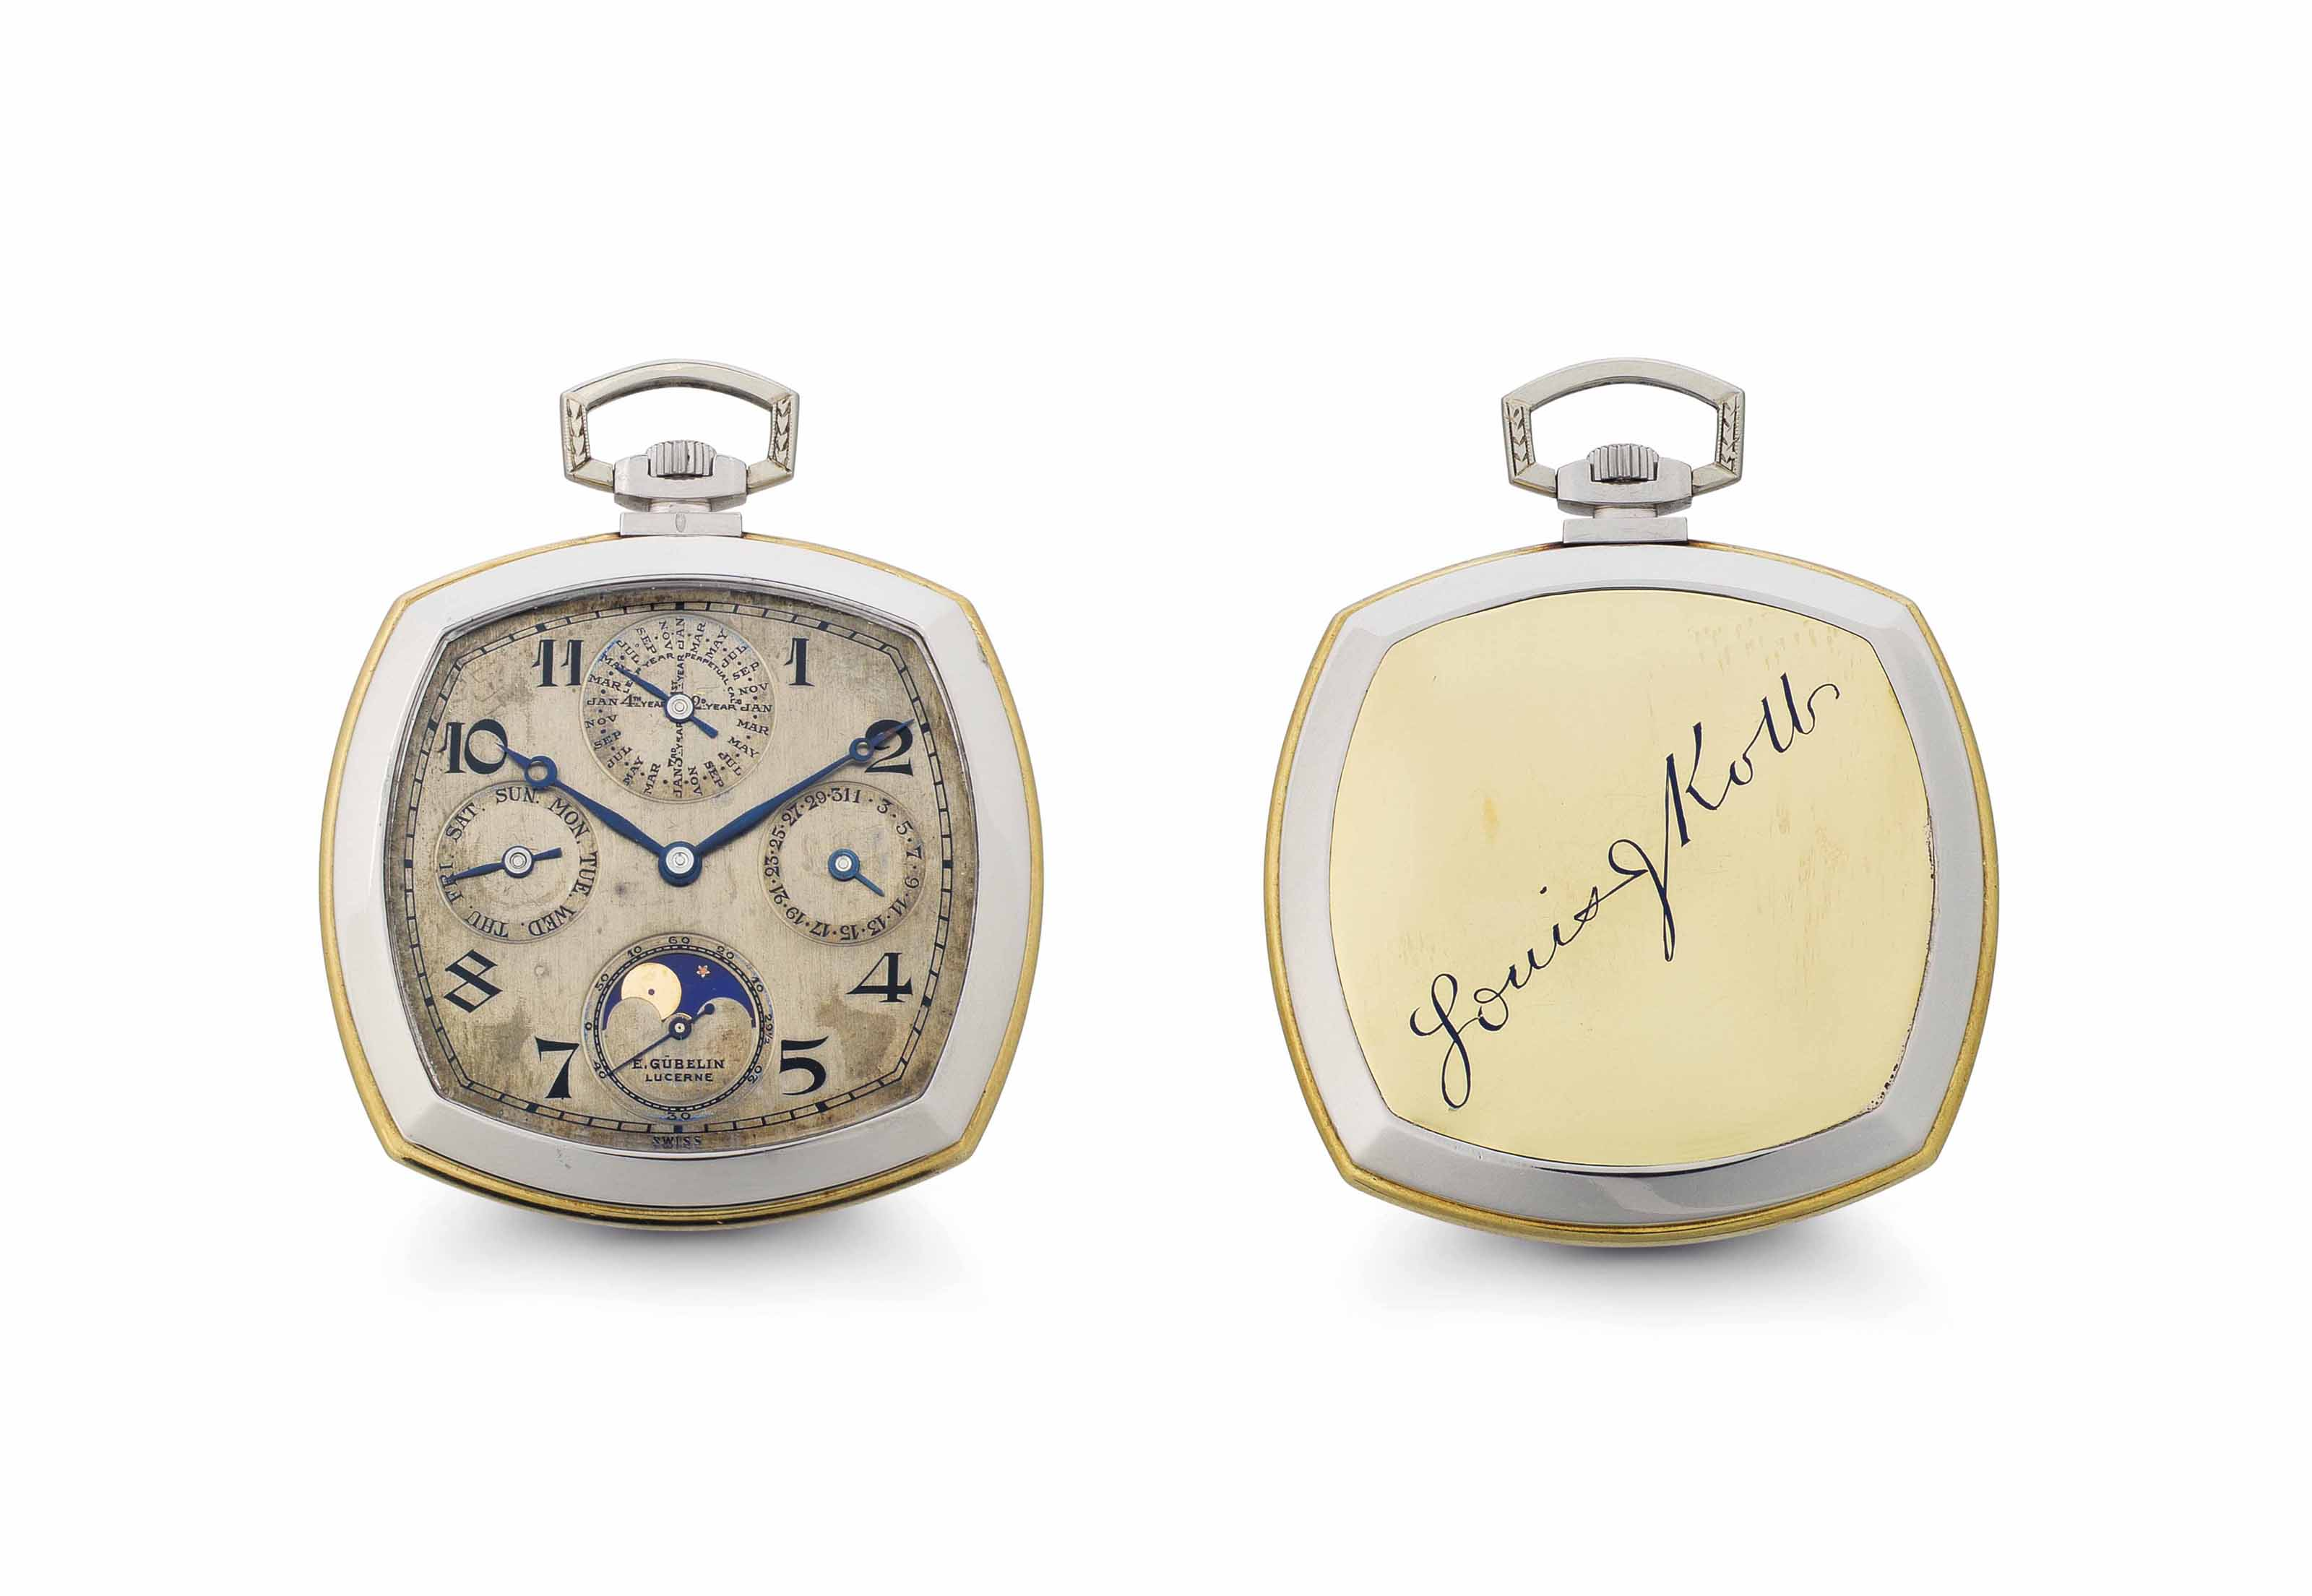 Gübelin.  A Rare 18k Gold and Platinum Perpetual Calendar Openface Keyless Lever Dress Watch with Moon Phase